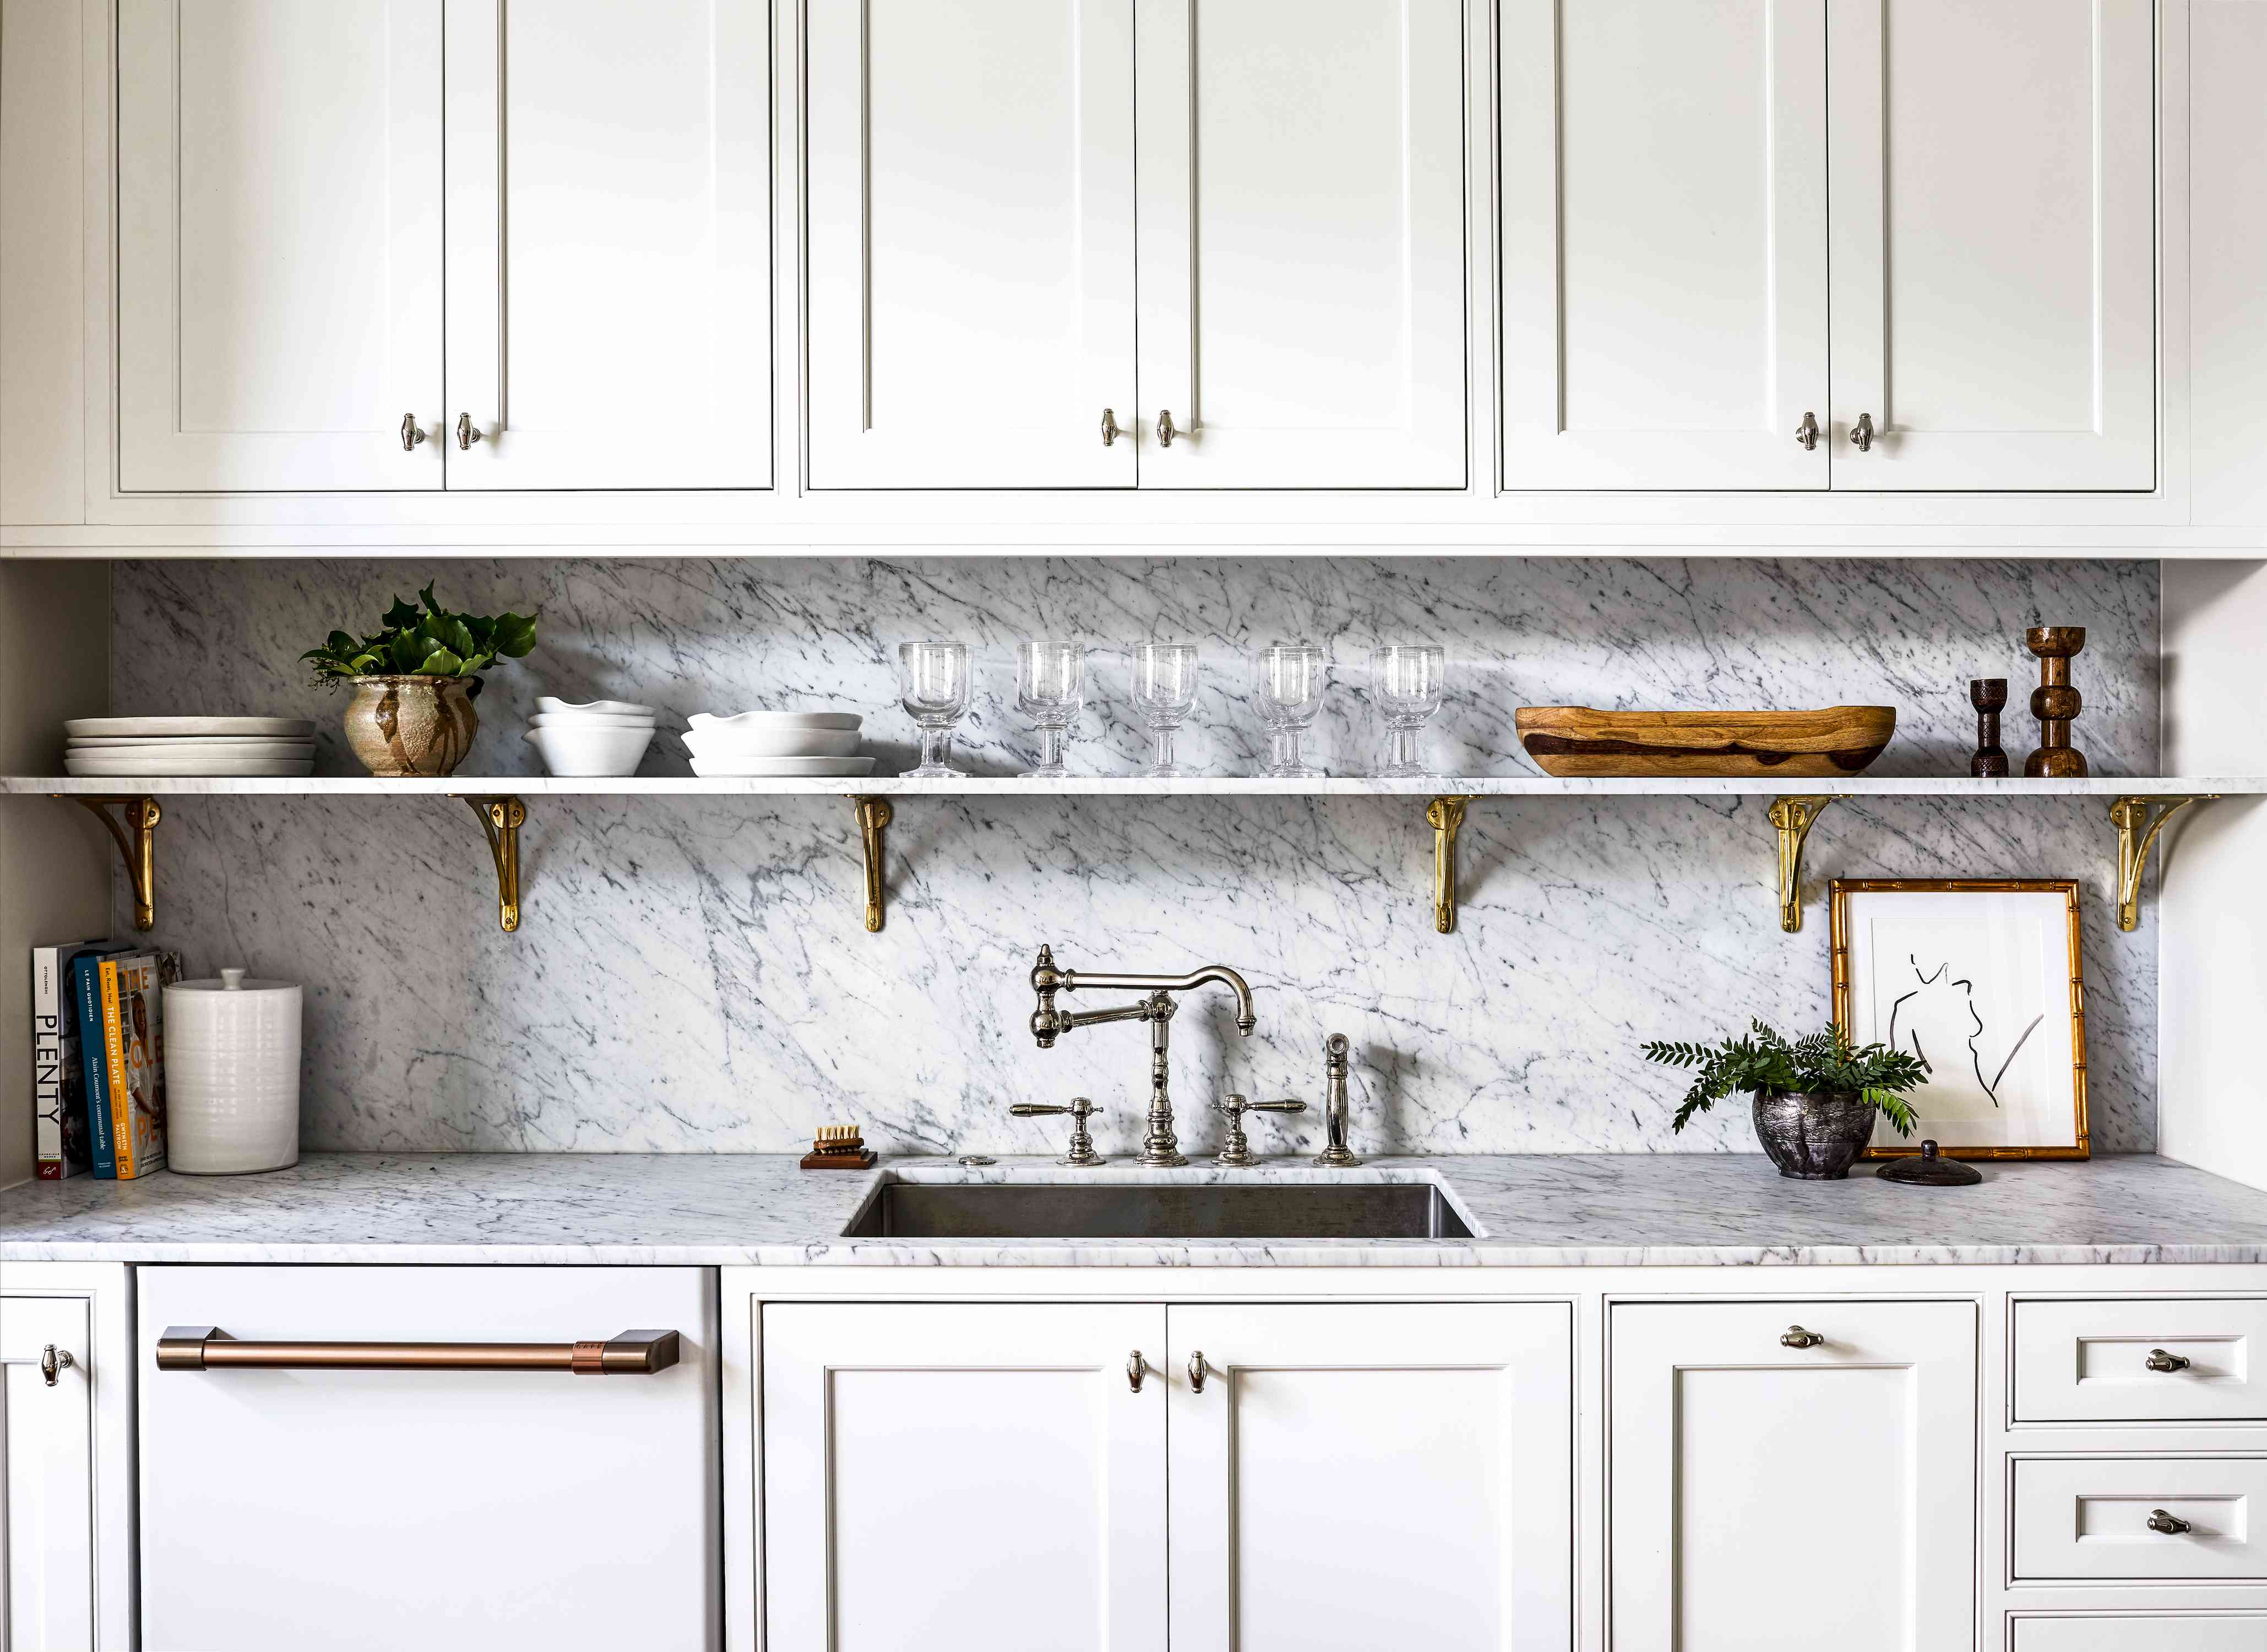 Close up of marble kitchen counters and shelf with glassware.